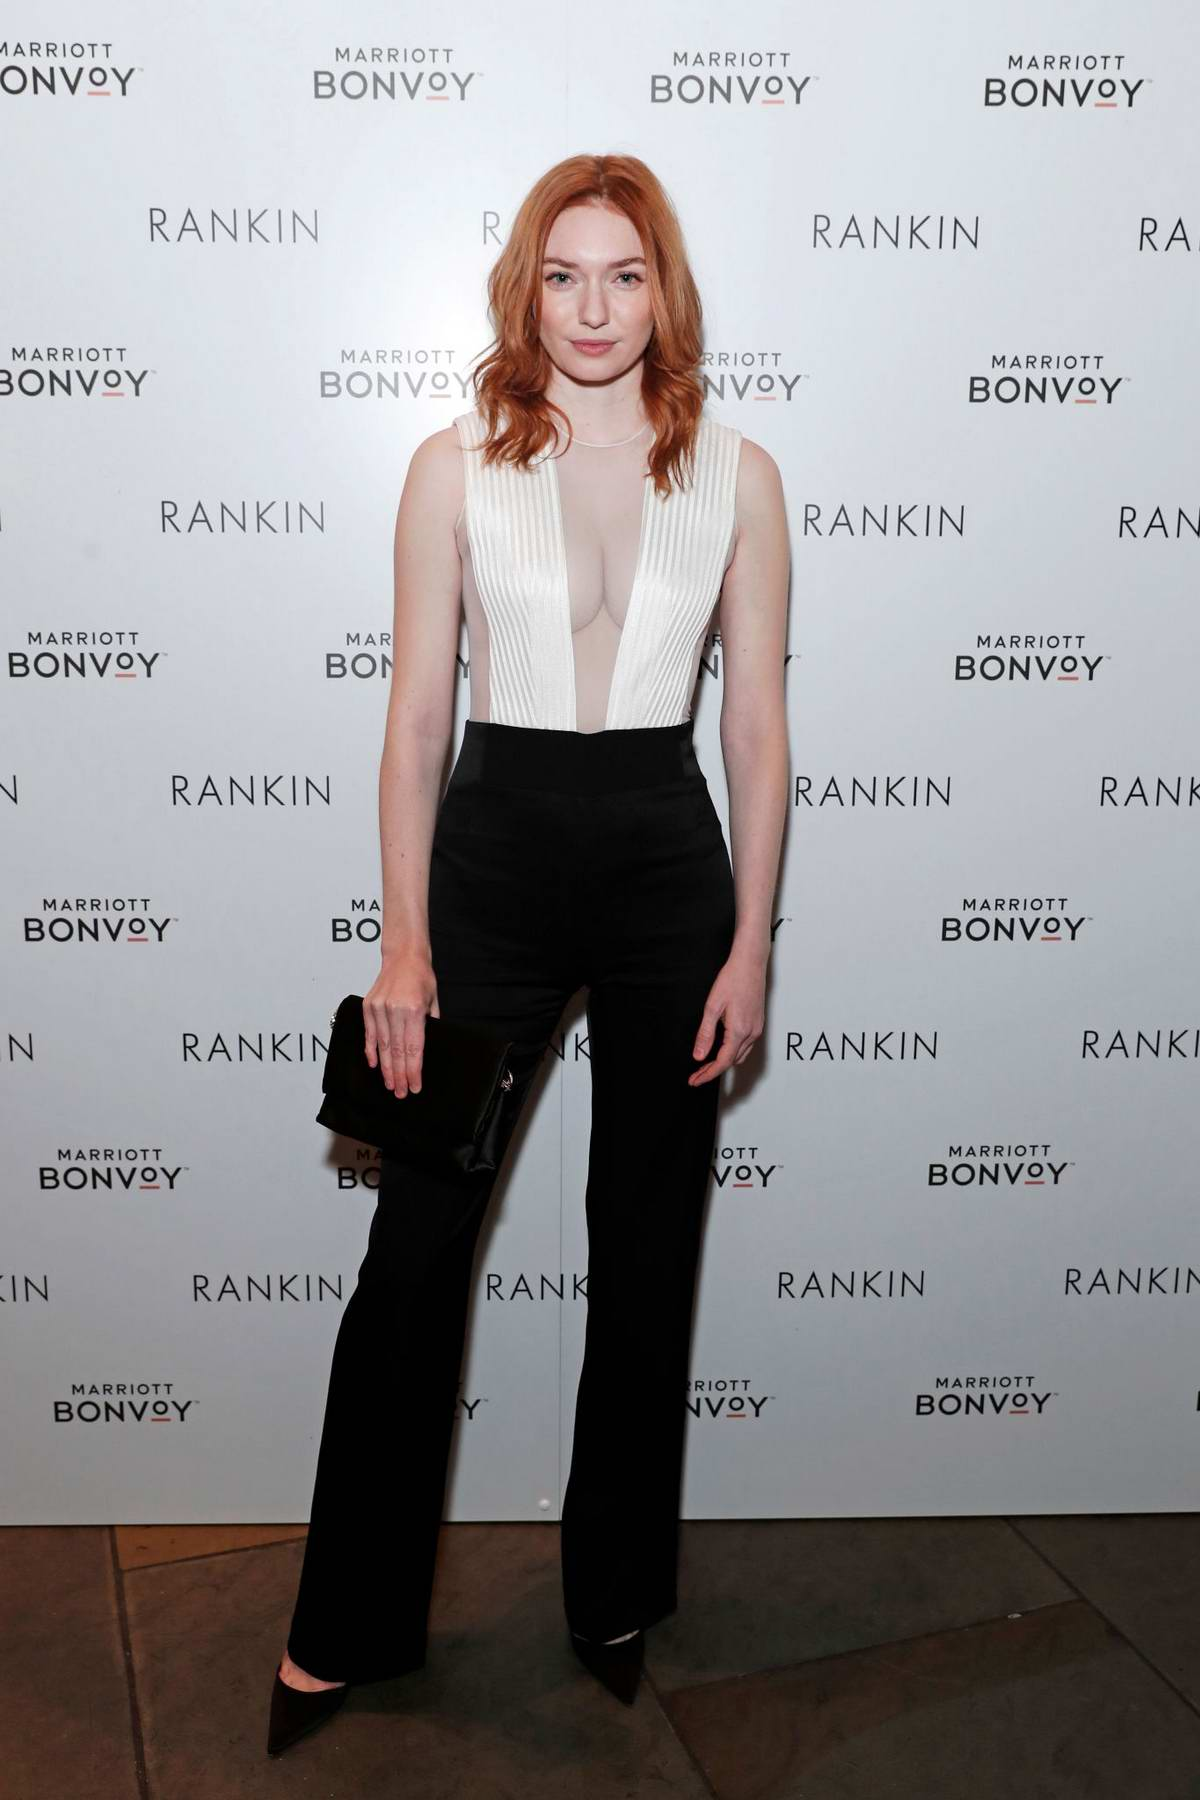 Eleanor Tomlinson attends the launch of 'Loyalty & Love' in London, UK